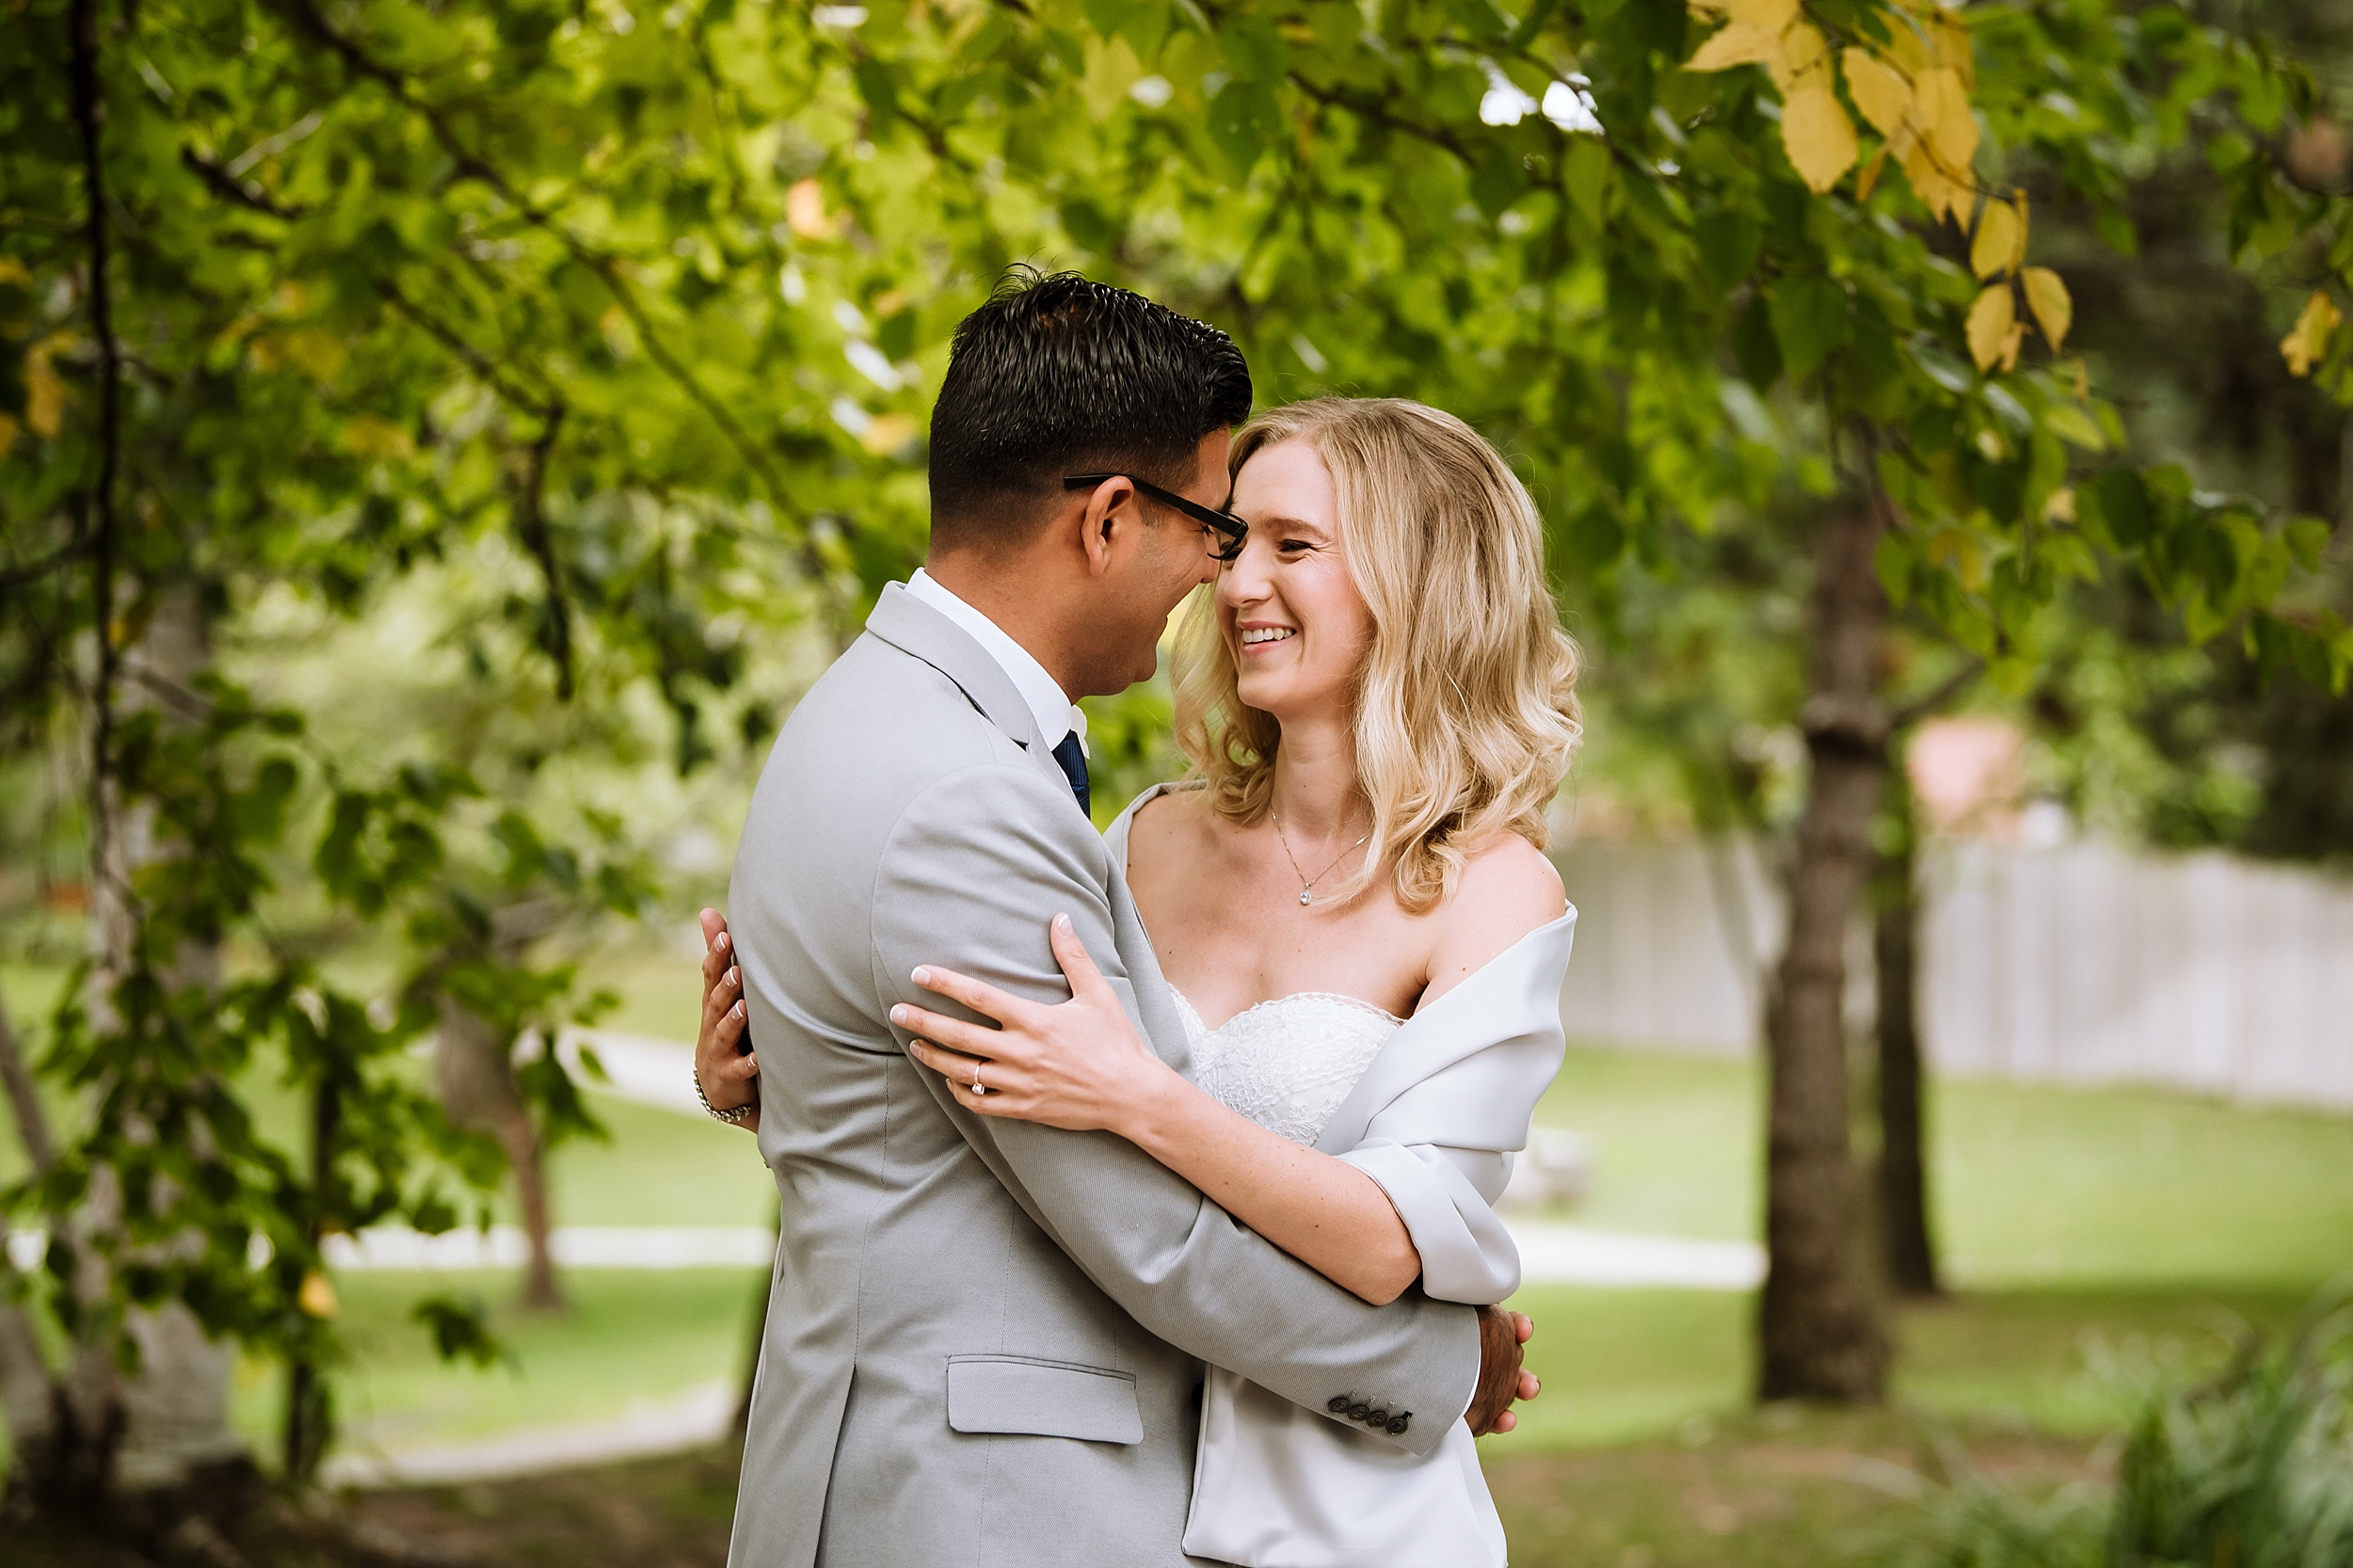 Kariya_Park_Wedding_Shoot_Toronto_Photographer_0027.jpg